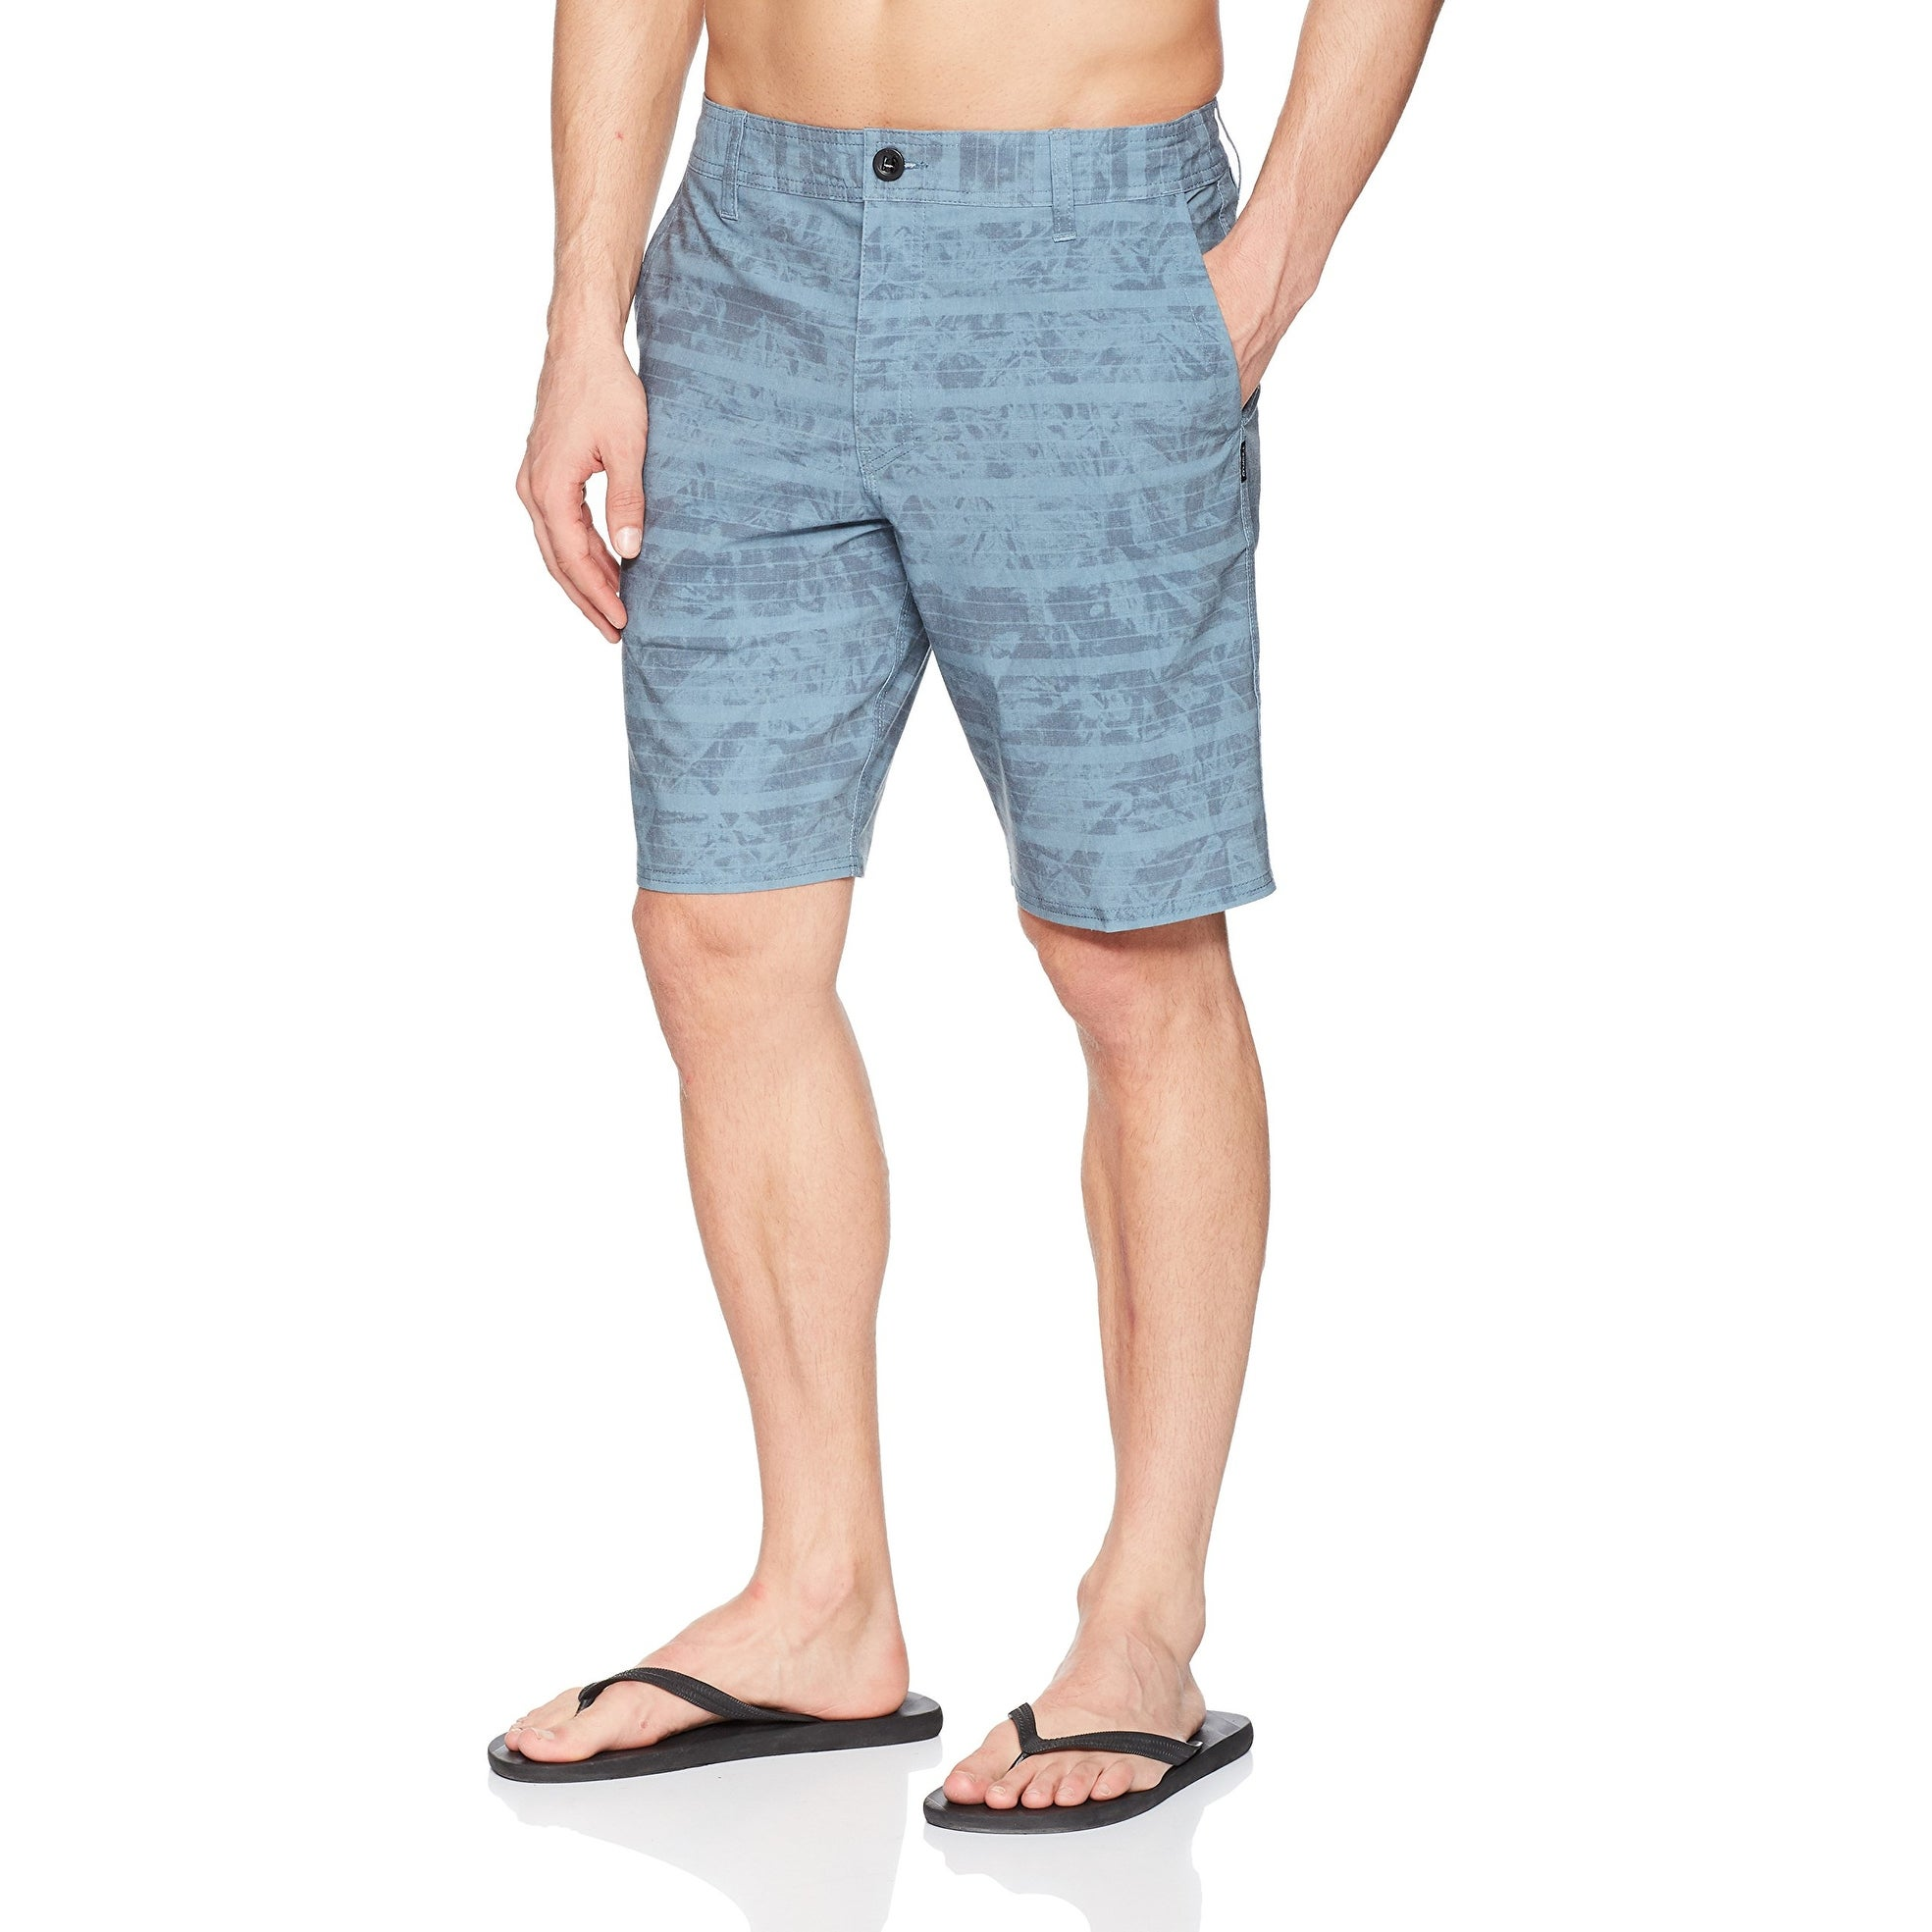 08bf4f8877c08 Men's O'Neill Shorts | Find Great Men's Clothing Deals Shopping at Overstock